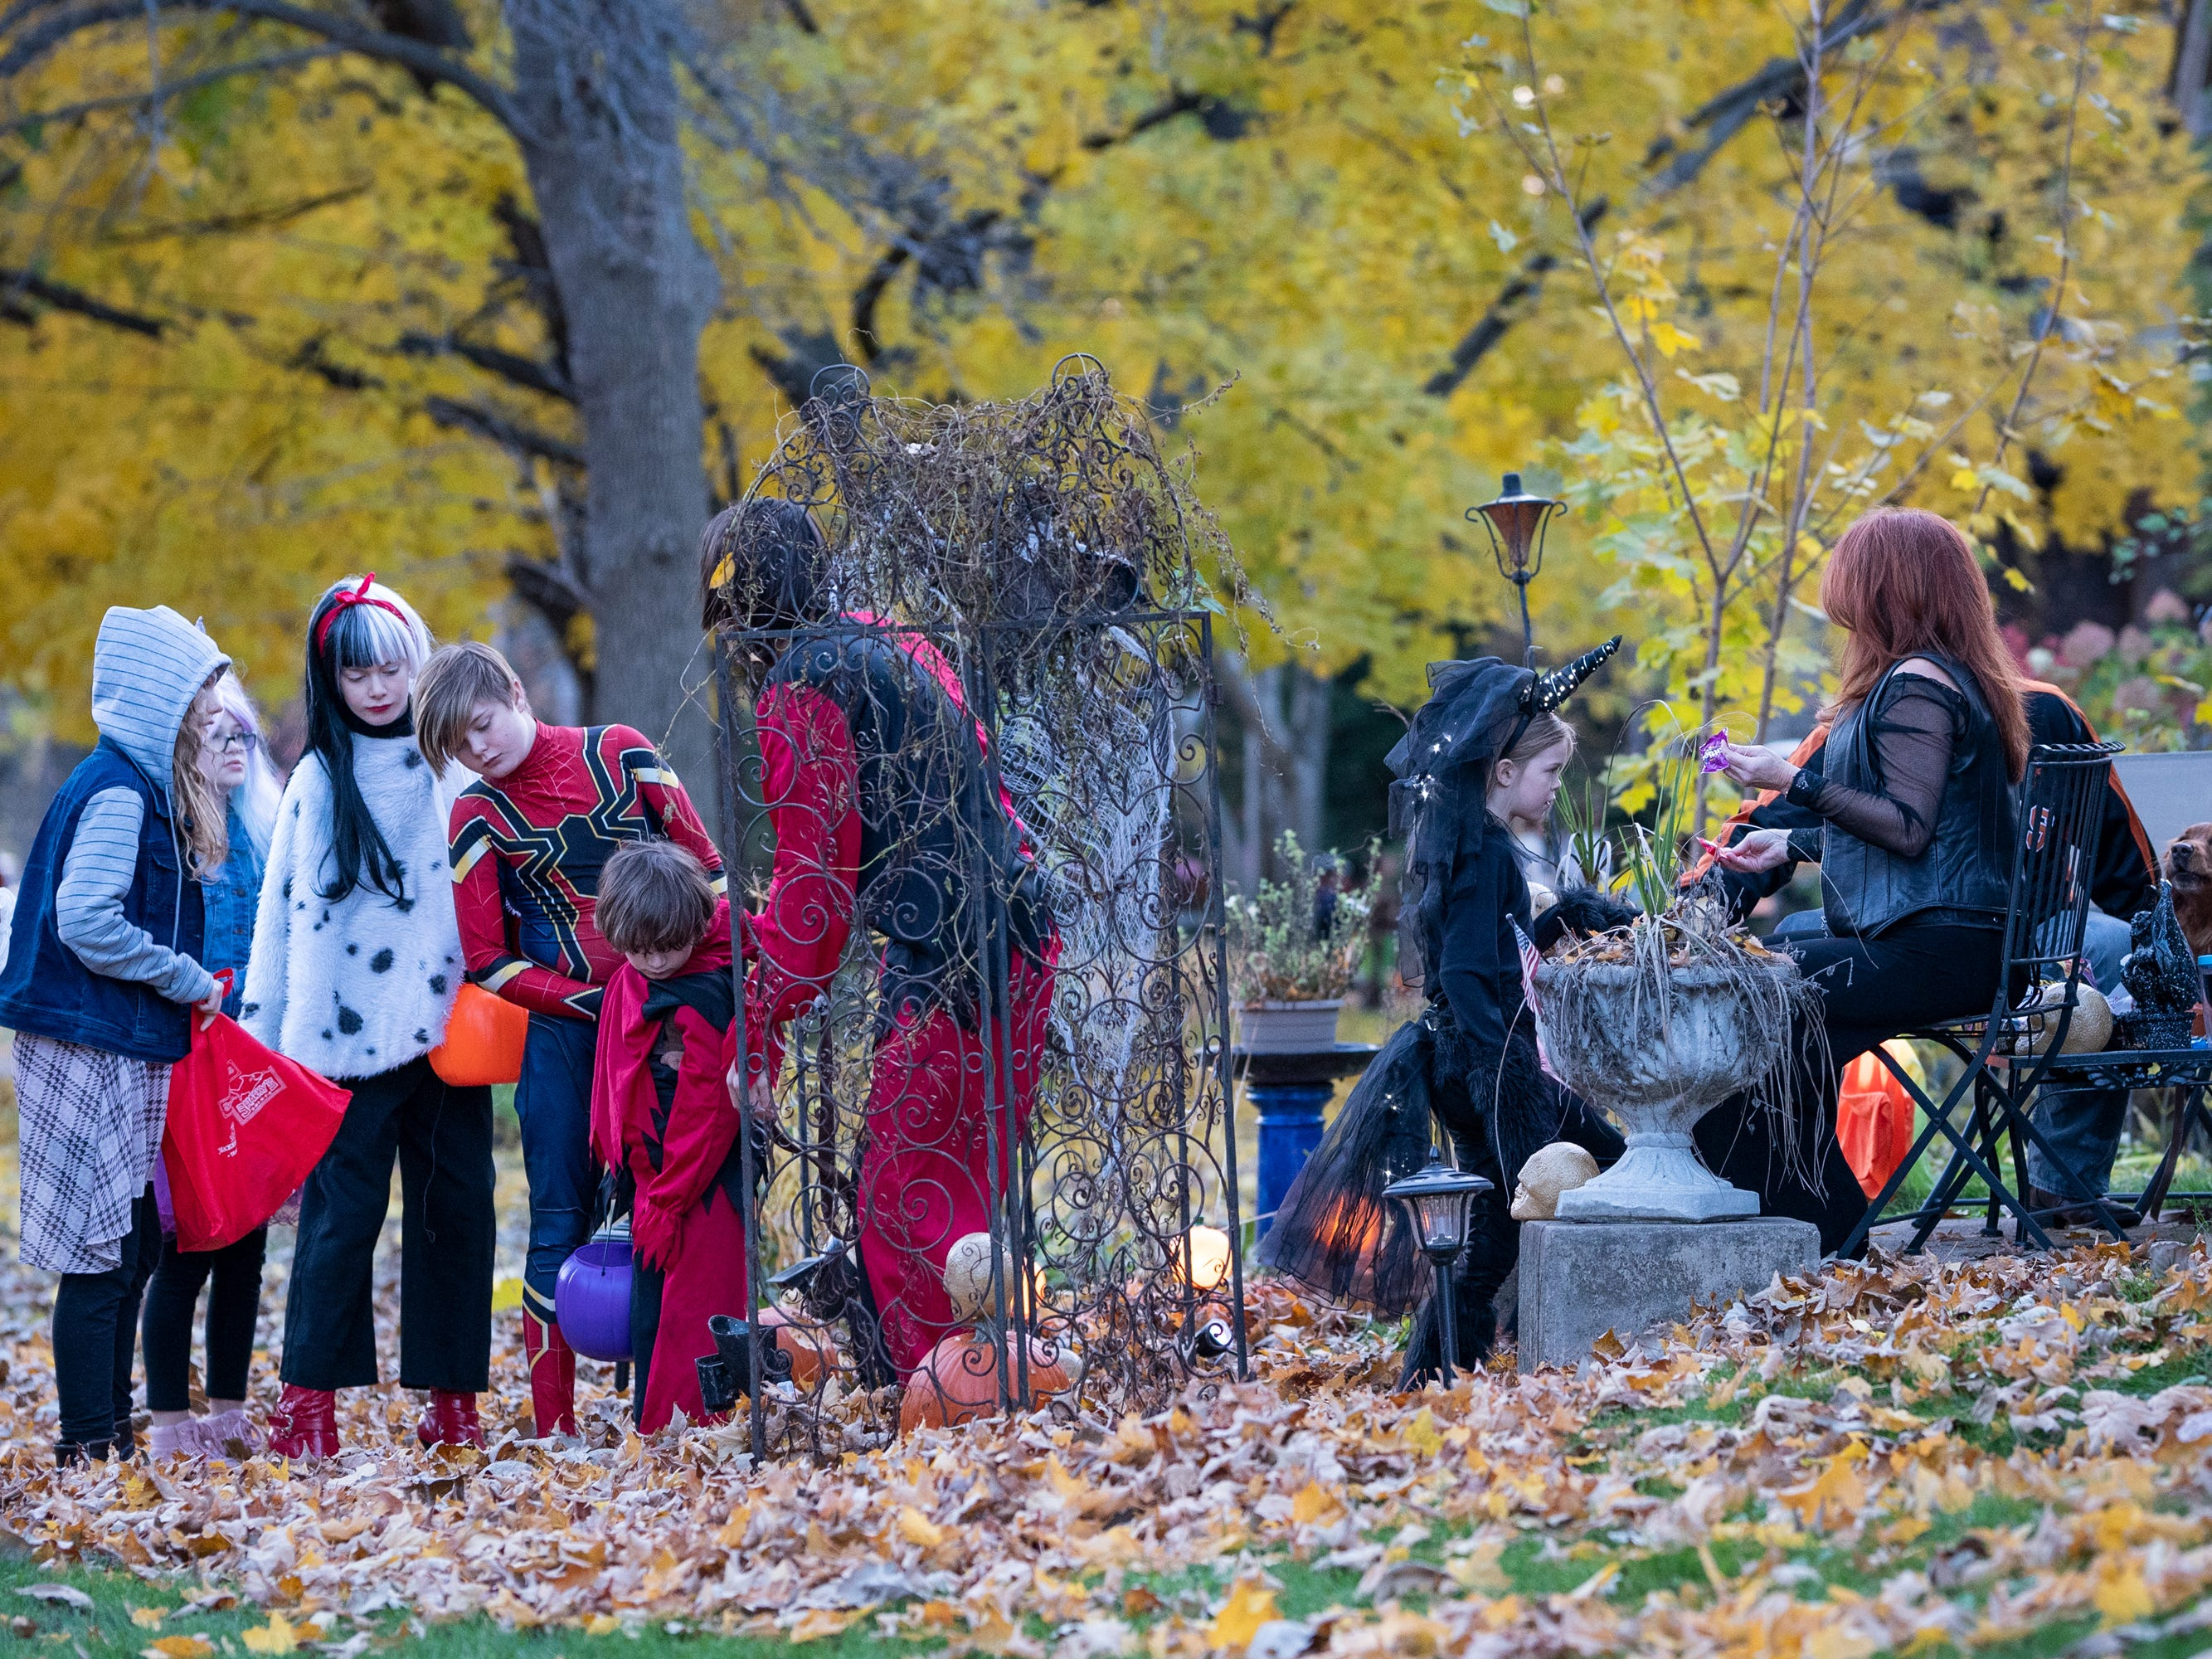 Jeff and Lainey Schinker hand out candy in front of their house on Washington Avenue. Children, along with their parents, made the most of the beautiful autumn weather to trick or treat in Oshkosh Wednesday evening.